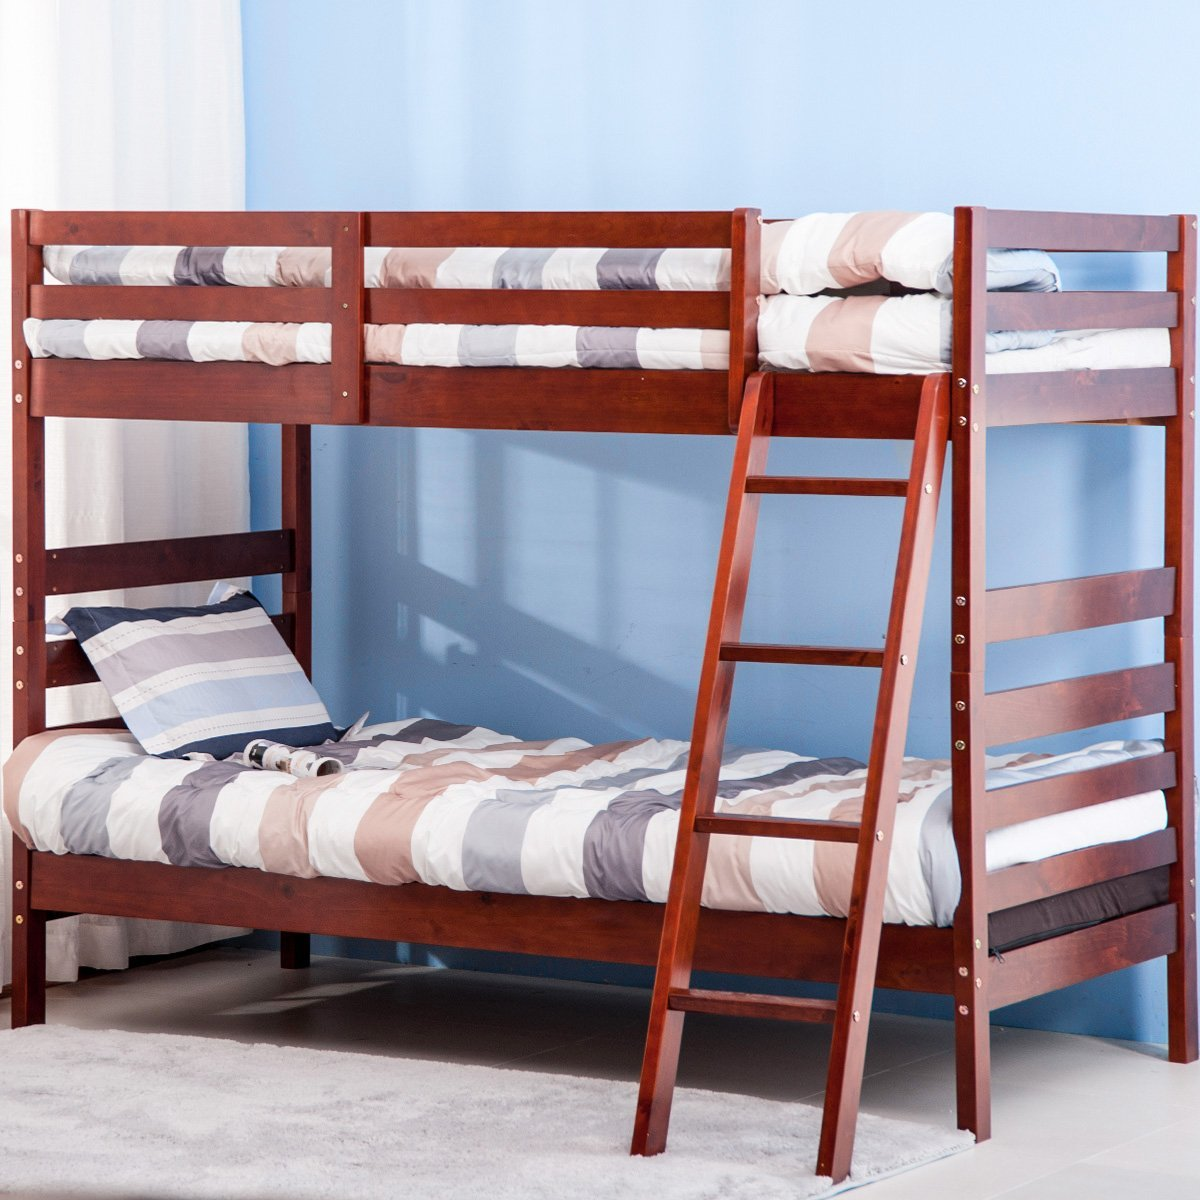 Cheap Bunk Beds Chic And Cheap Bunk Beds Under 200